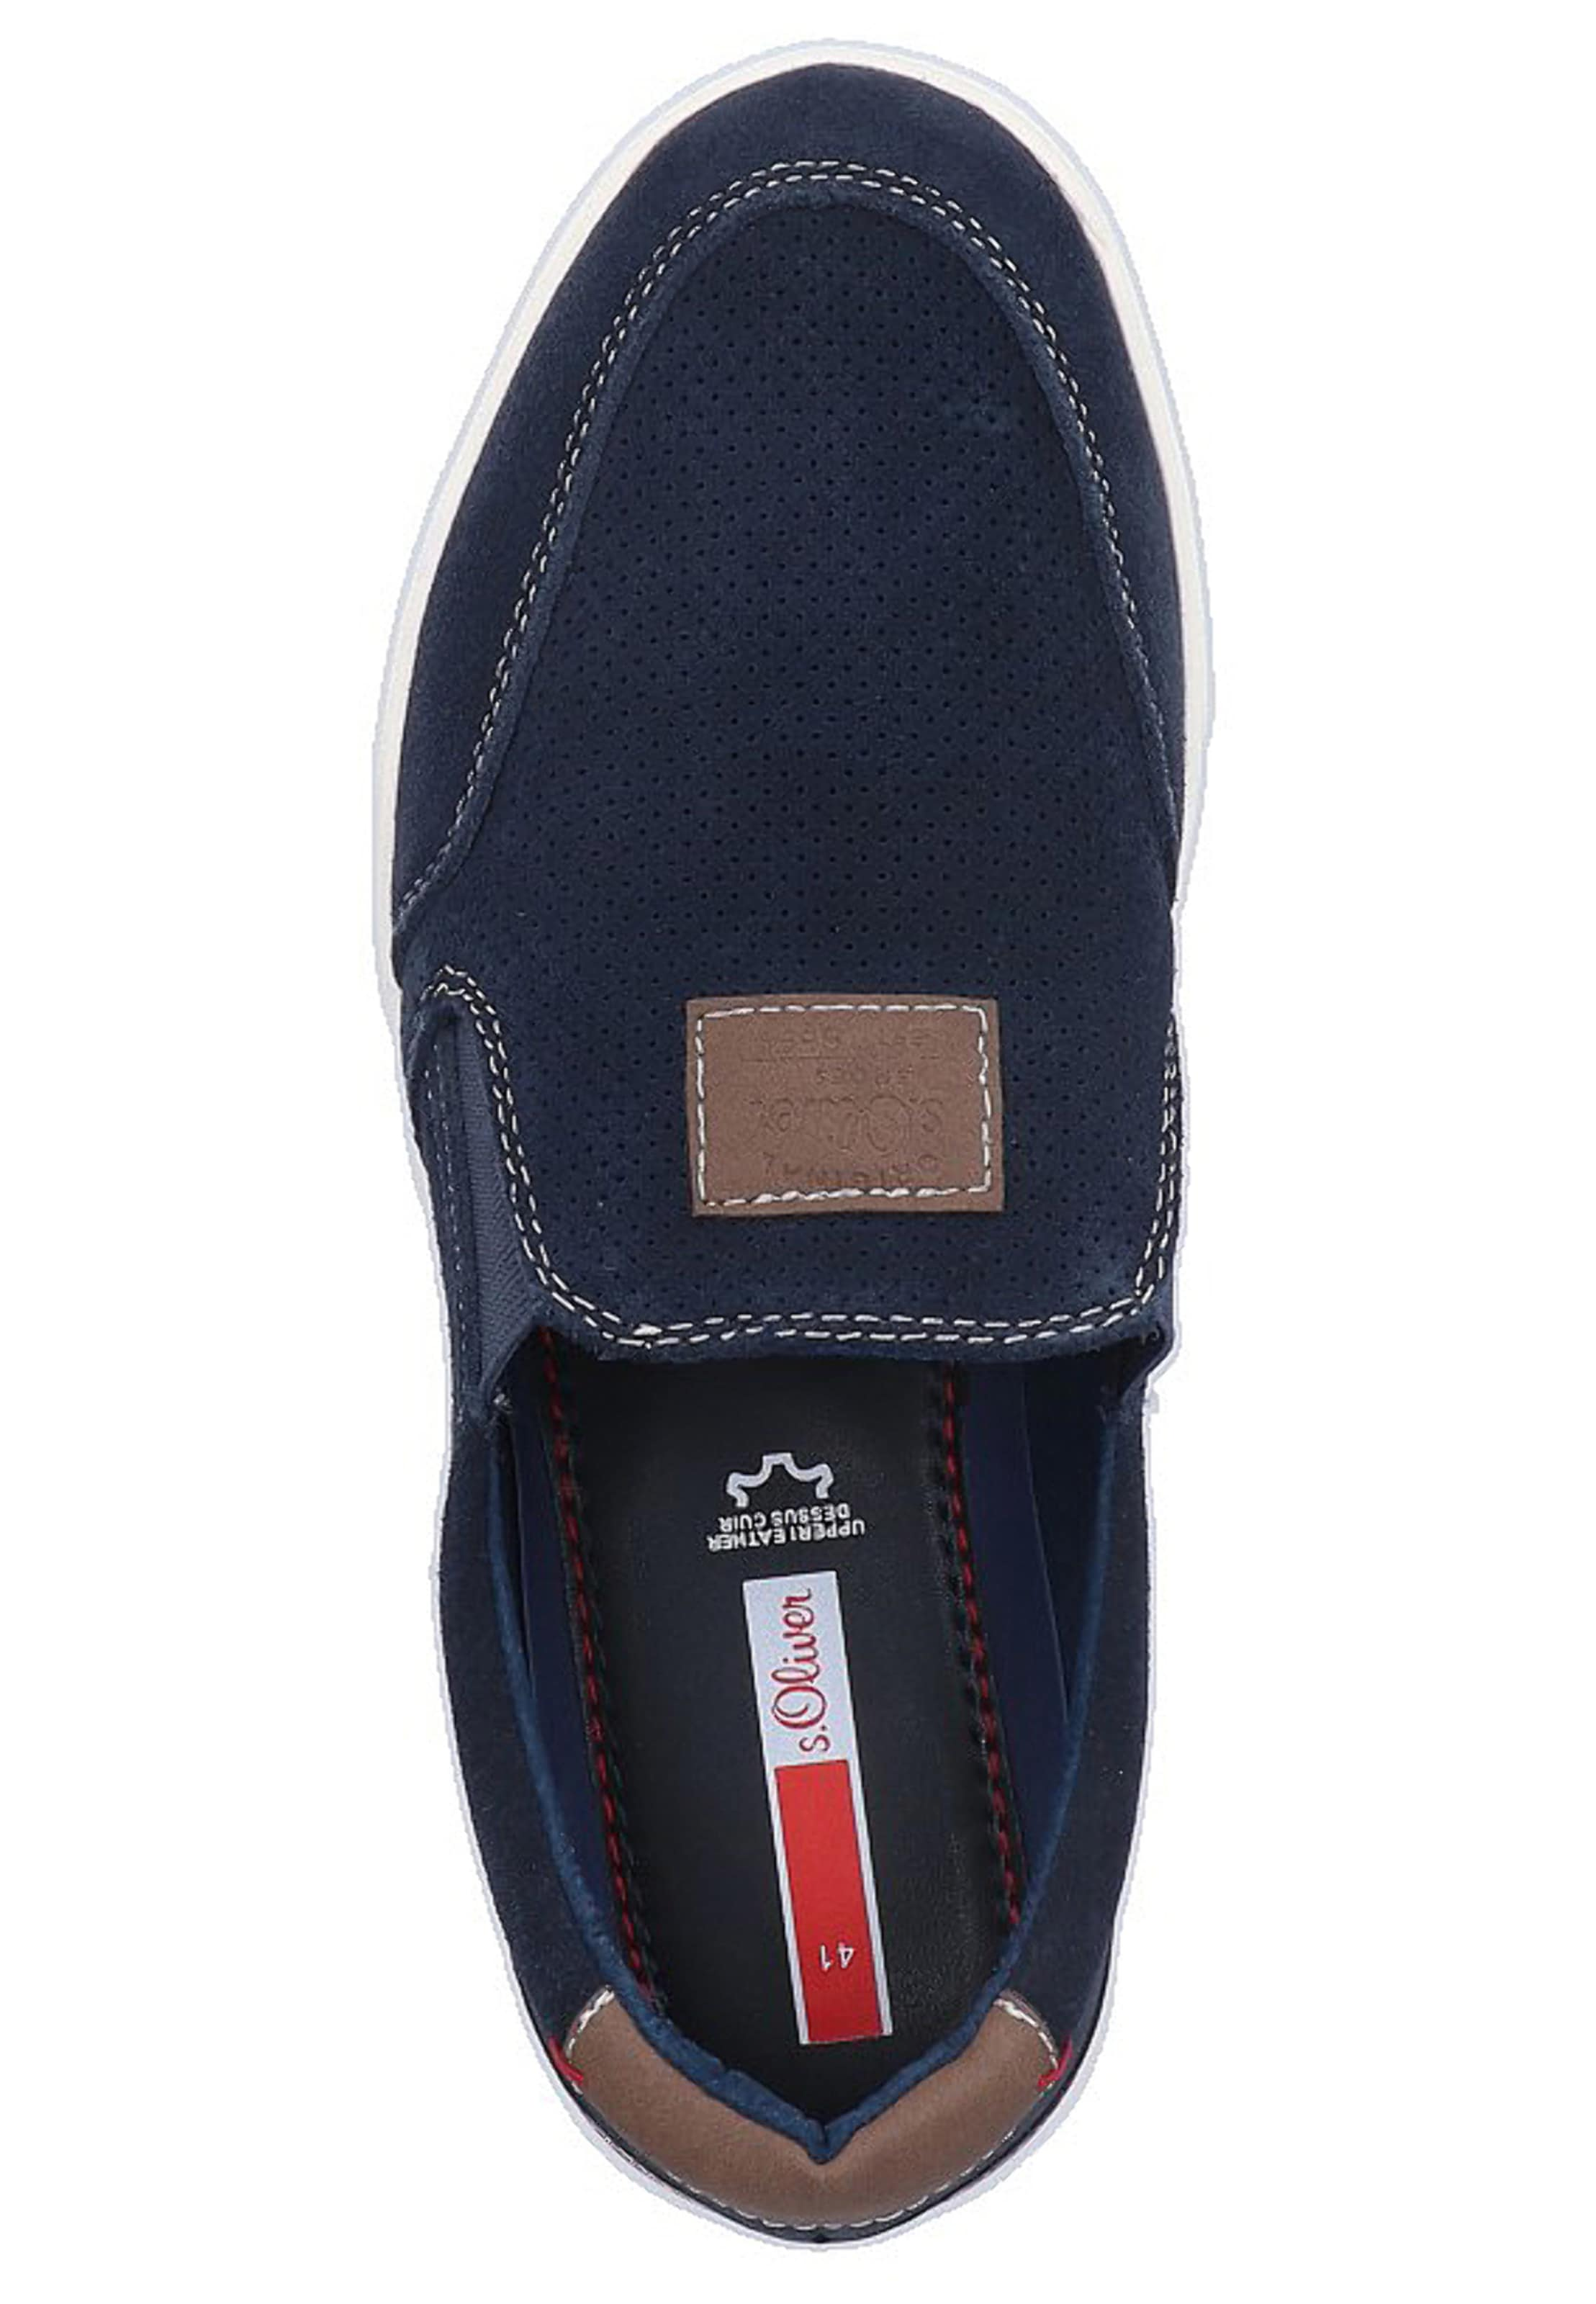 Label Red Slipper In NavyBraun oliver S 2WDI9EH